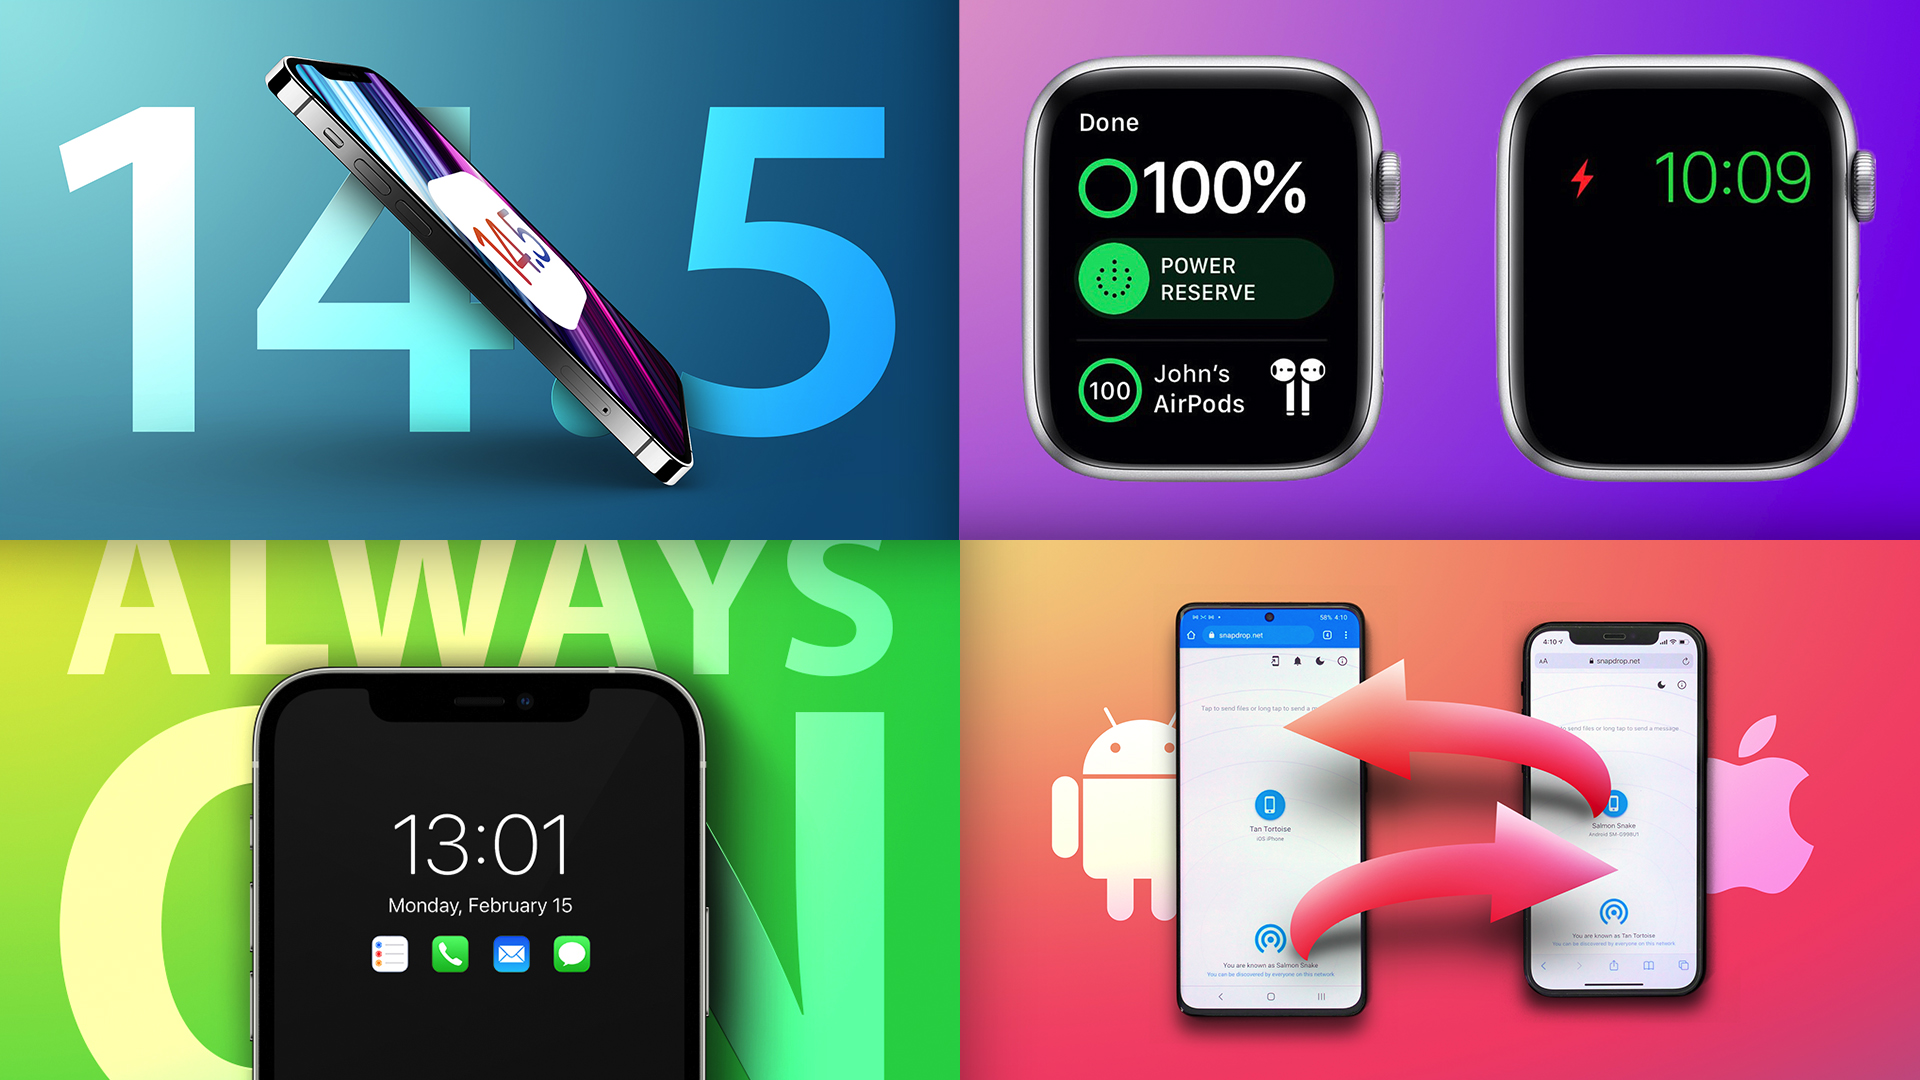 Top Stories: More iOS 14.5 Beta Changes, iPhone 13 Rumors, Apple Watch Charging Issue Fixed